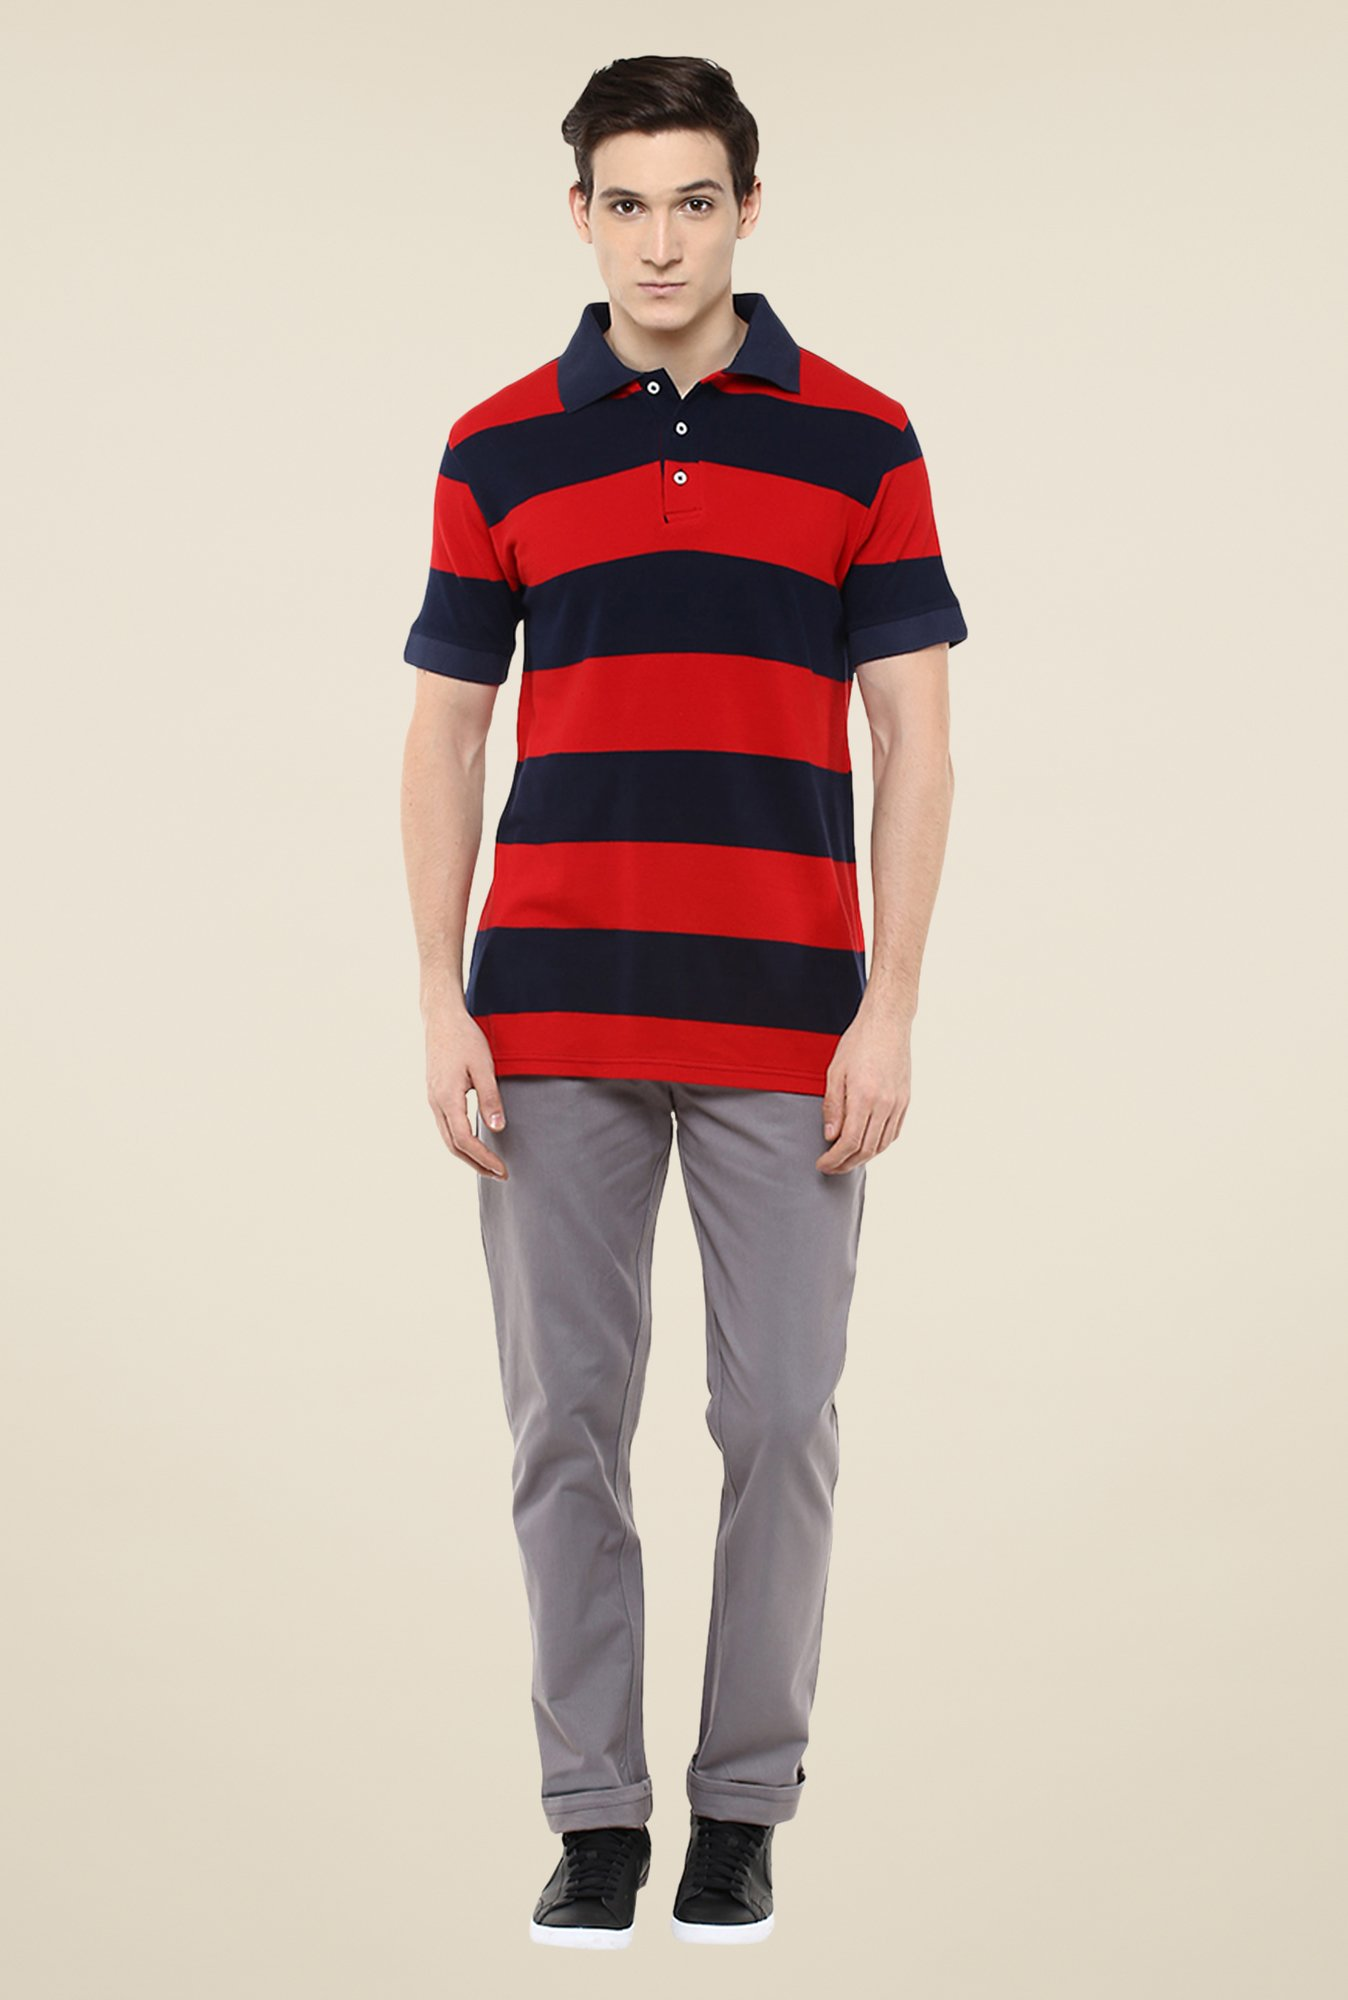 Yepme Red & Navy Brock Striped Polo T Shirt